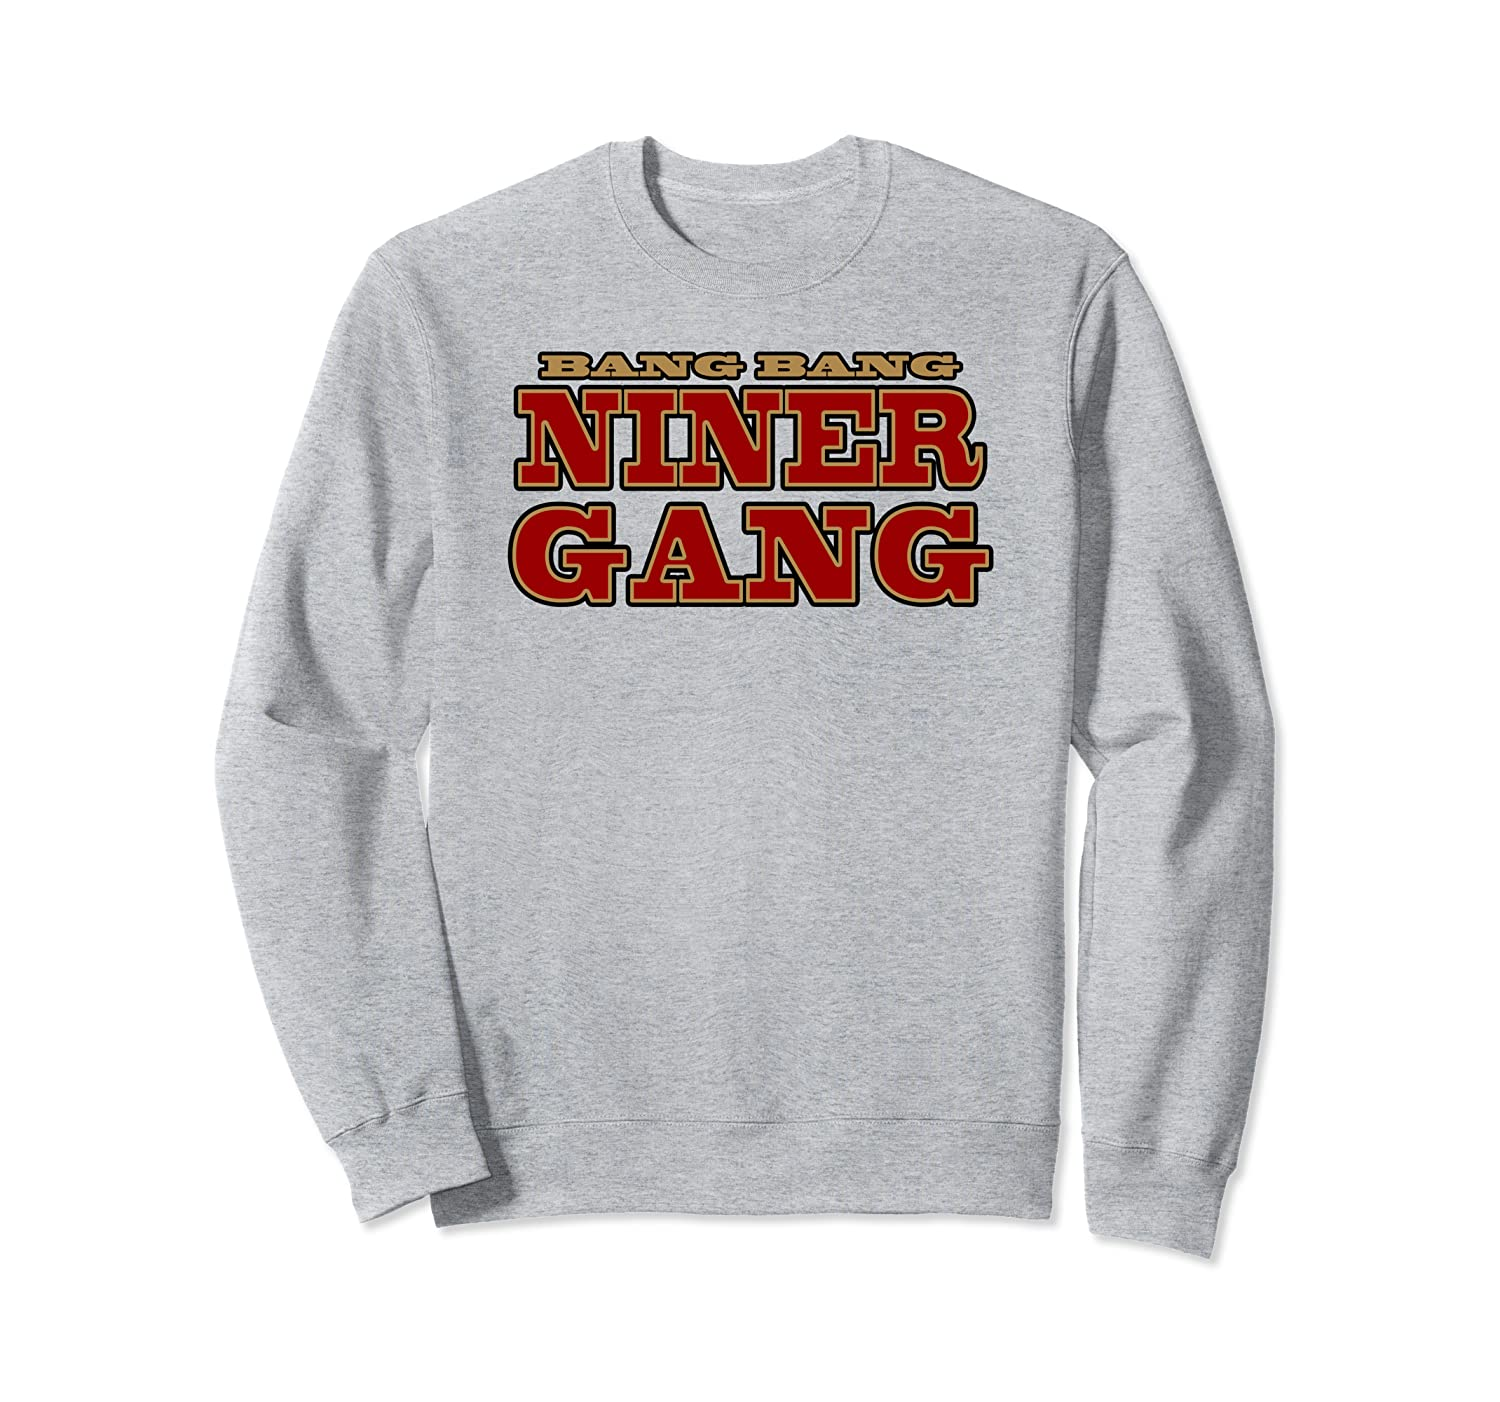 Bang Bang Niner Gang Football Sweatshirt Unisex Tshirt